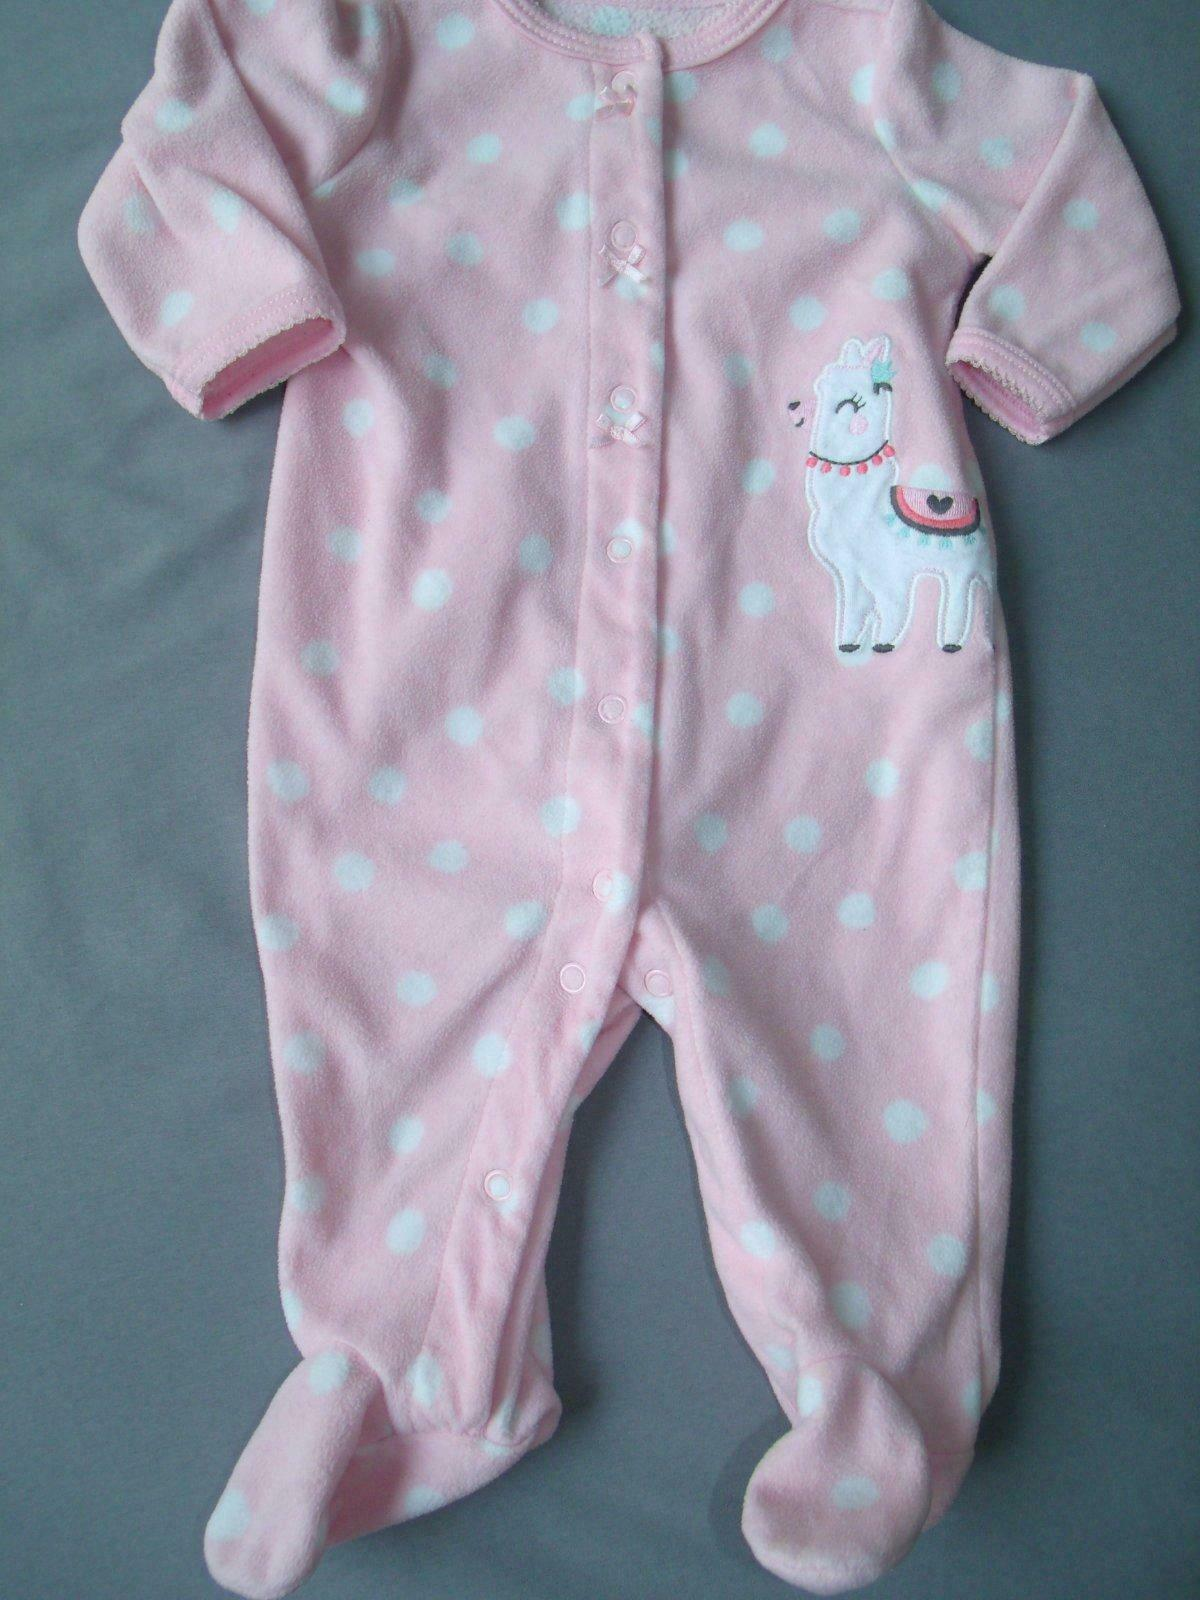 Baby Girl Clothes Nwot Carters 3 Month Pink Fleece Llama Outfit